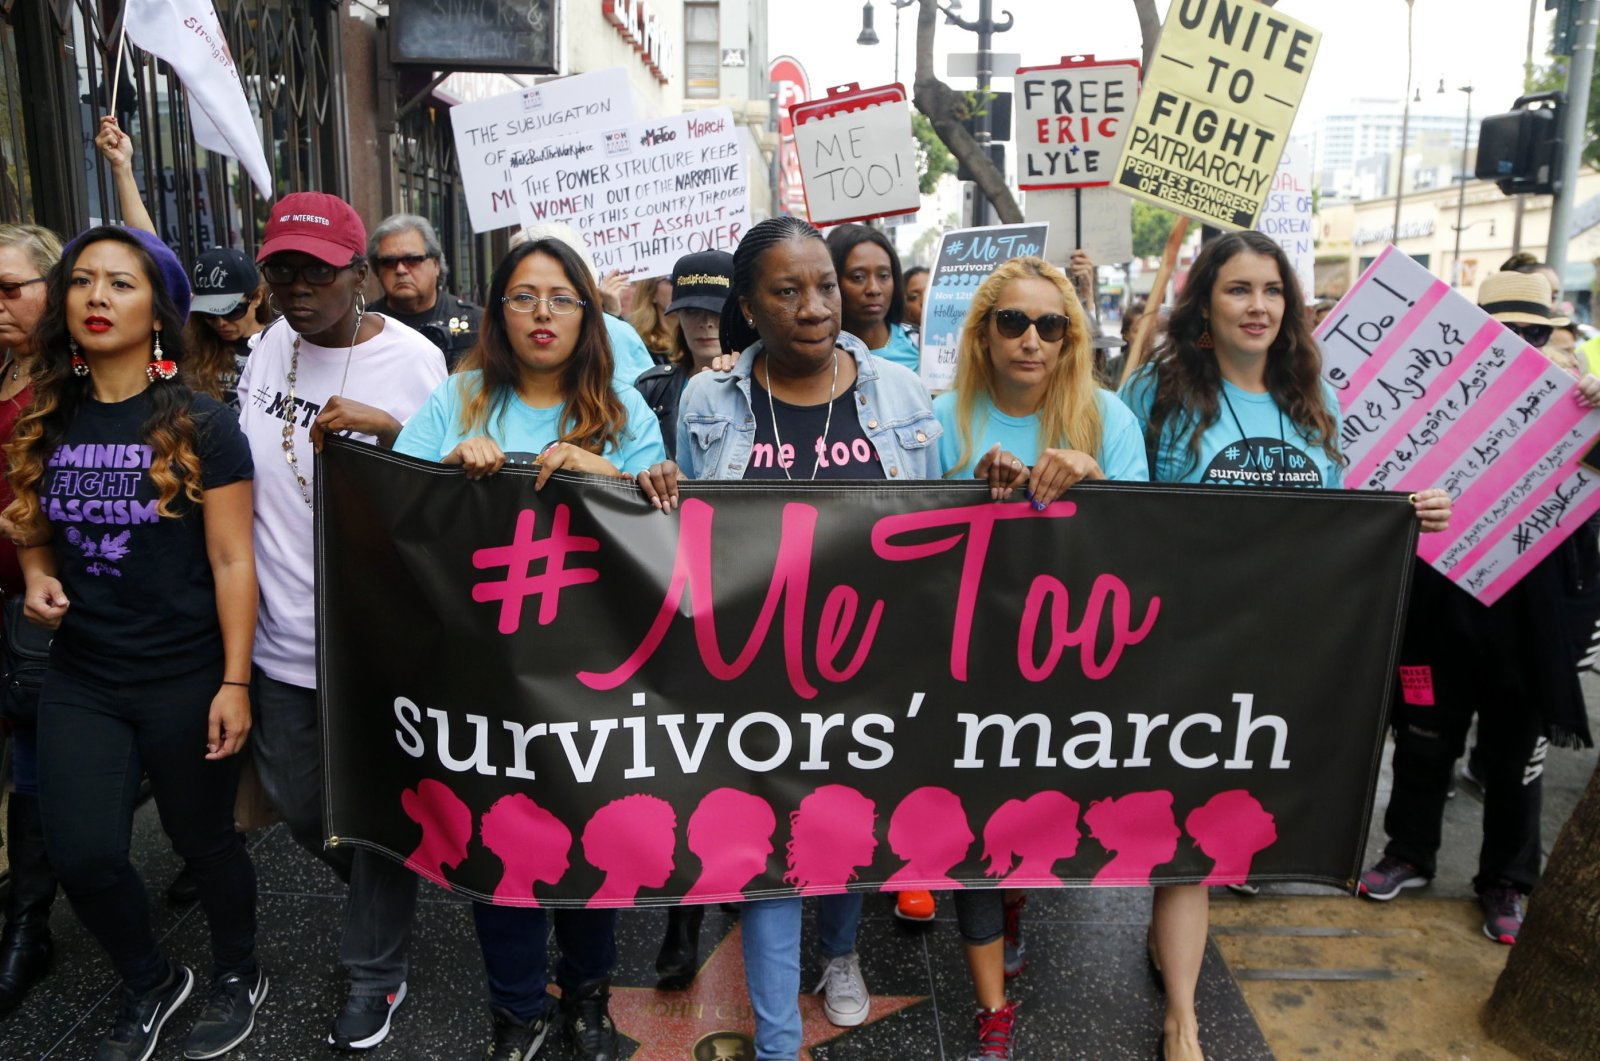 Tarana Burke (C), founder and leader of the #MeToo movement, marches with others at the #MeToo March in the Hollywood section of Los Angeles, California, U.S. Nov. 1, 2017. (AP Photo)